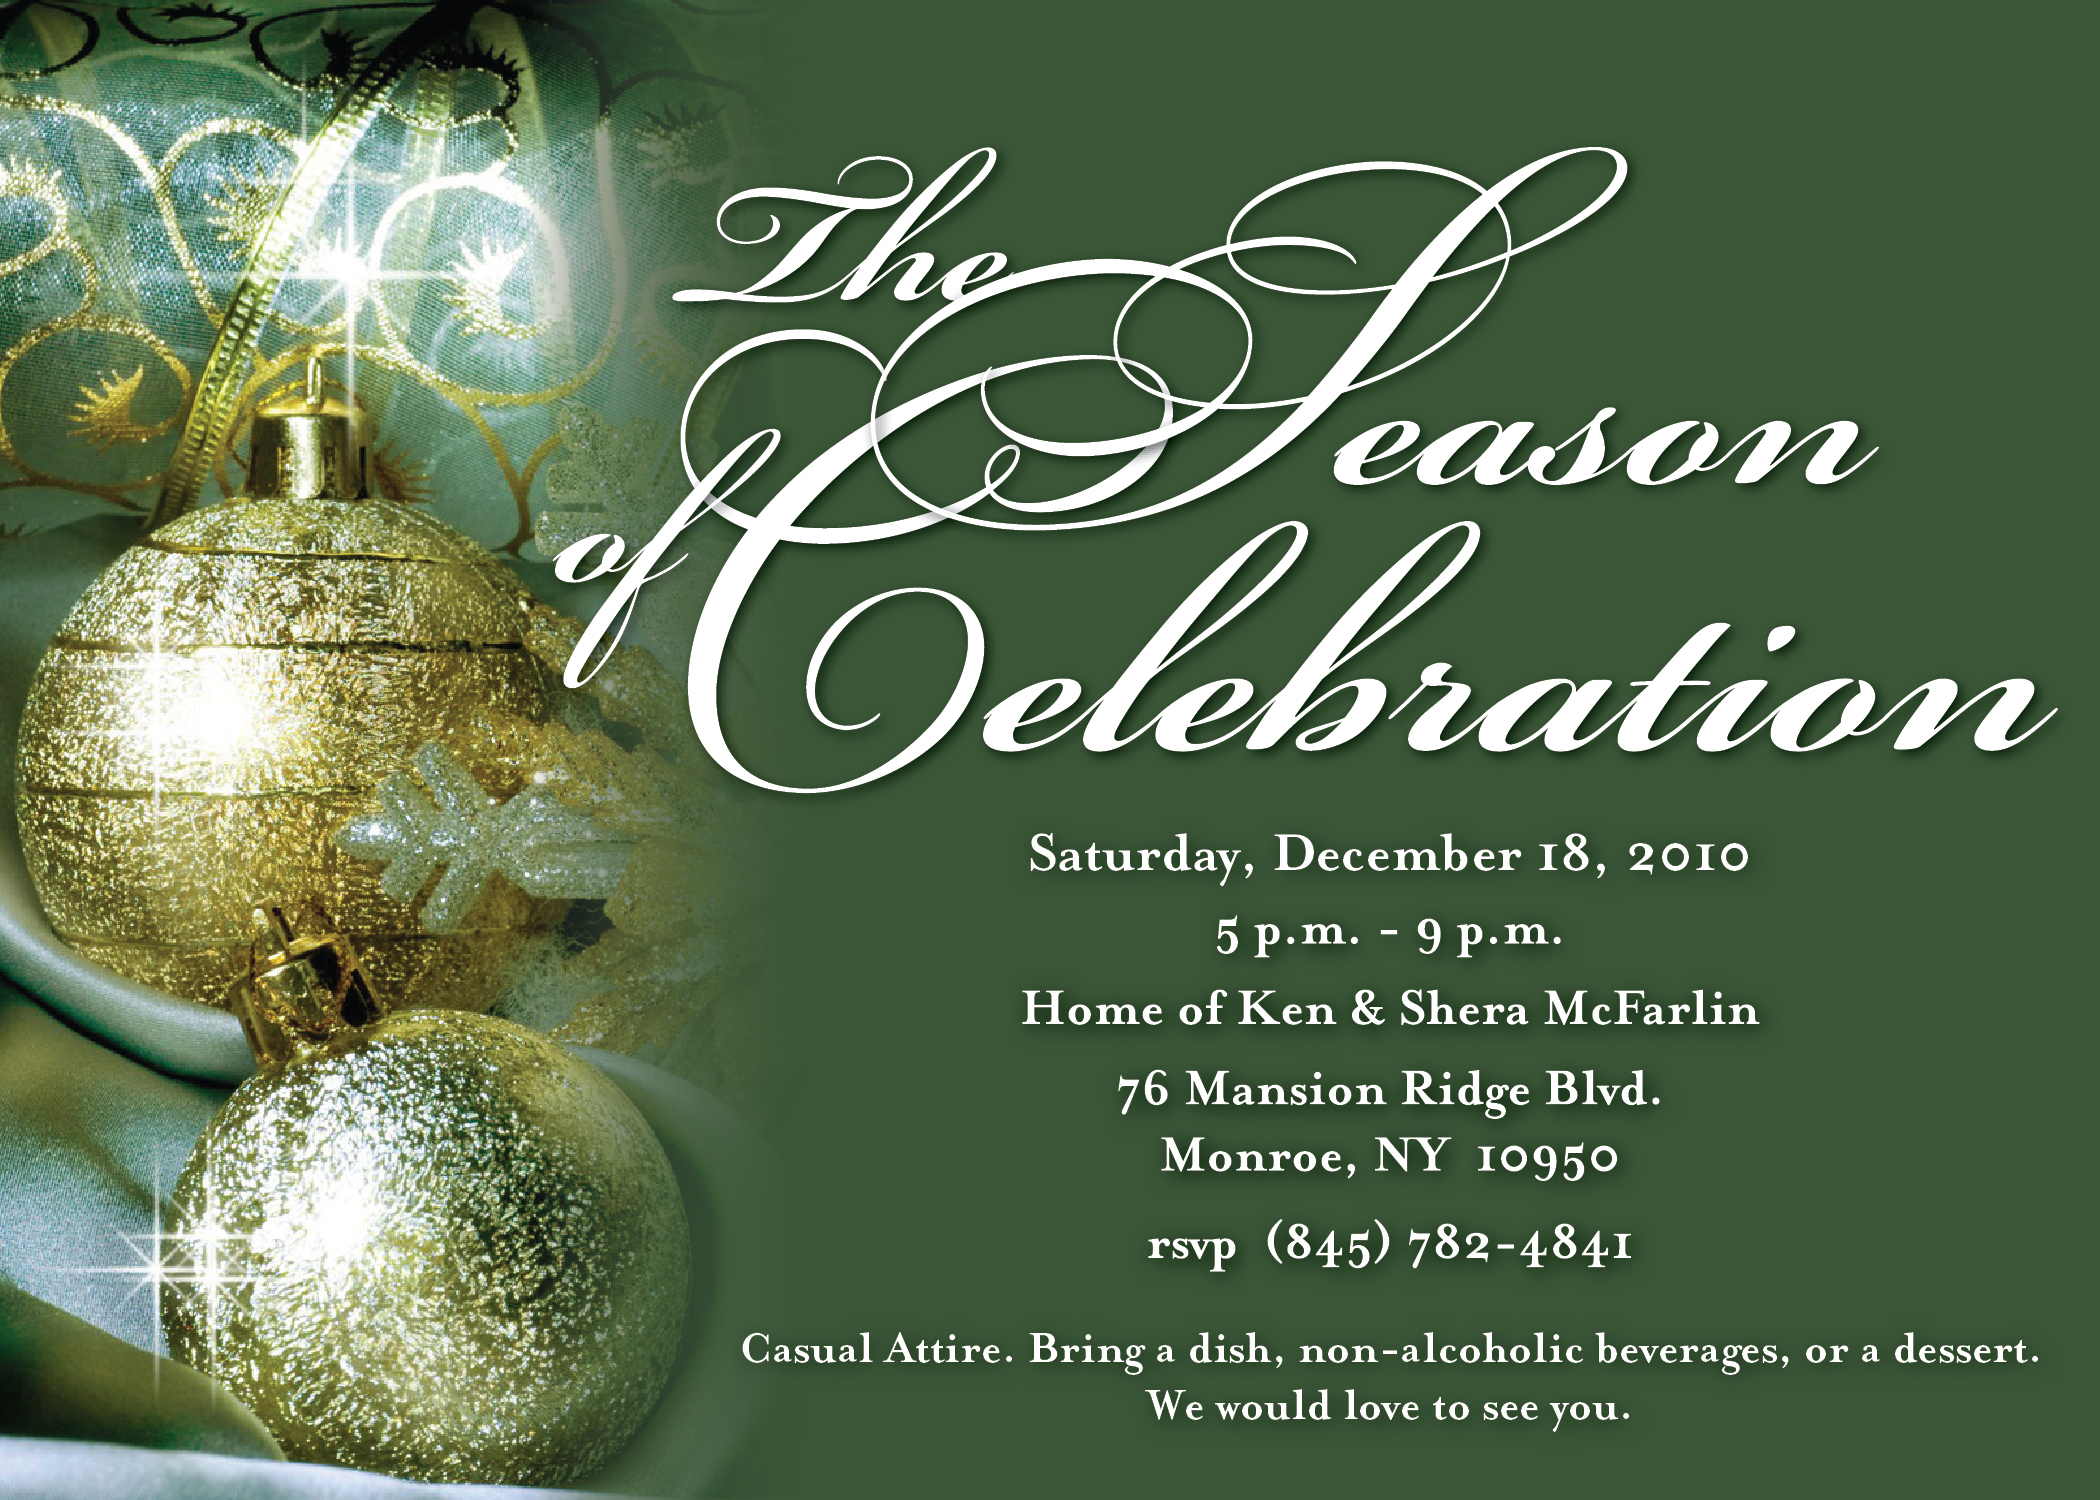 Christmas Invite flyer20103.jpg